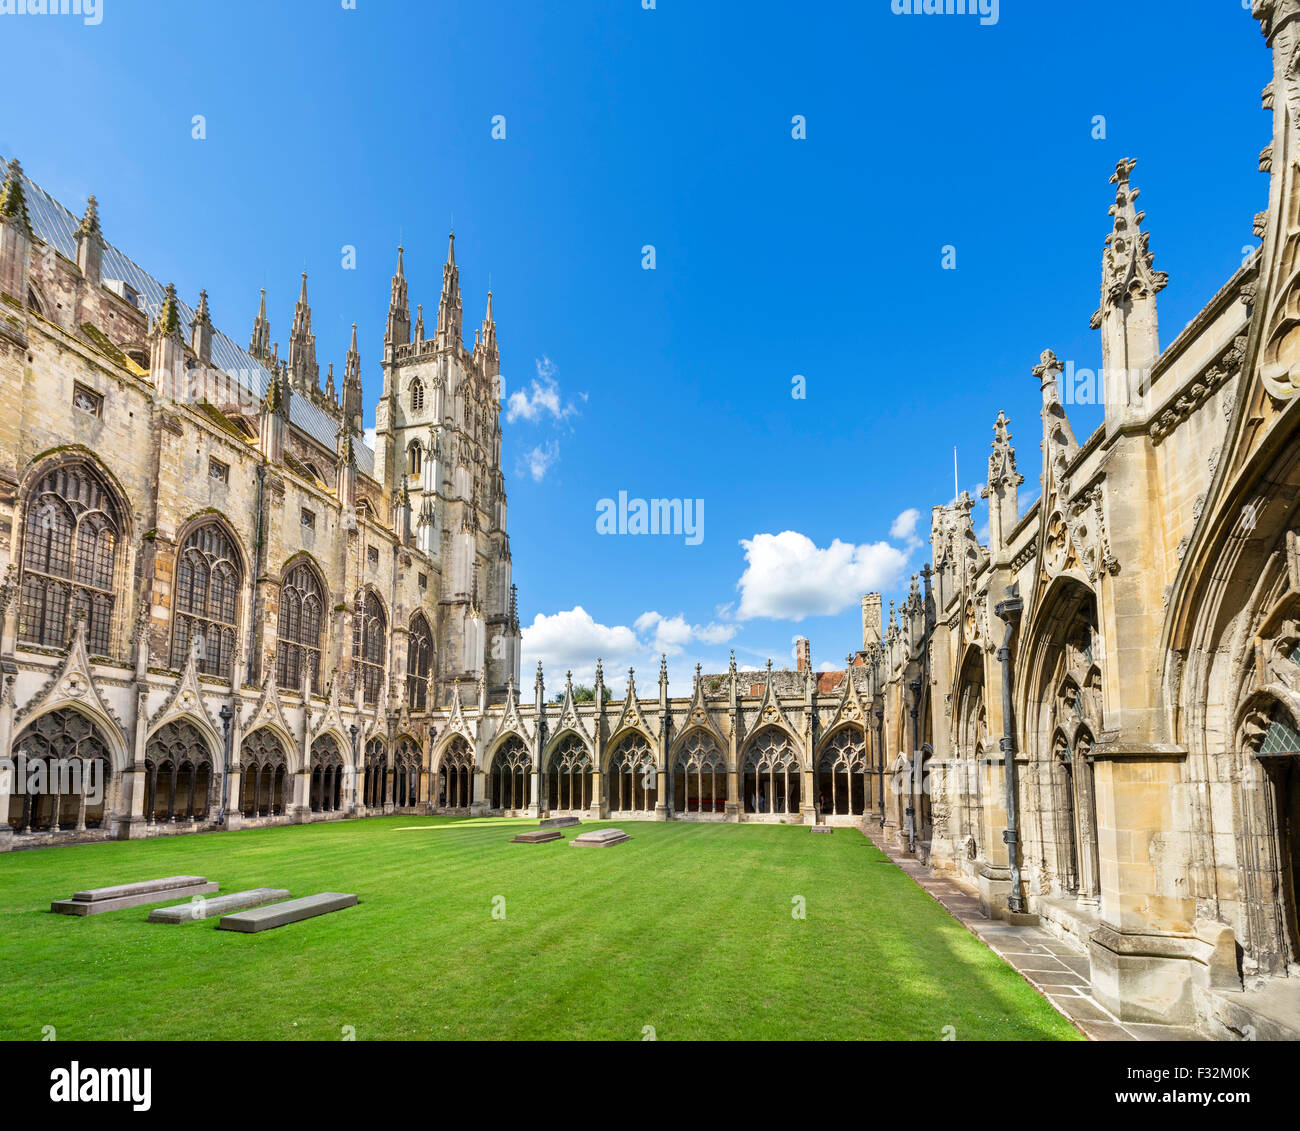 Le cloître, la Cathédrale de Canterbury, Canterbury, Kent, England, UK Photo Stock